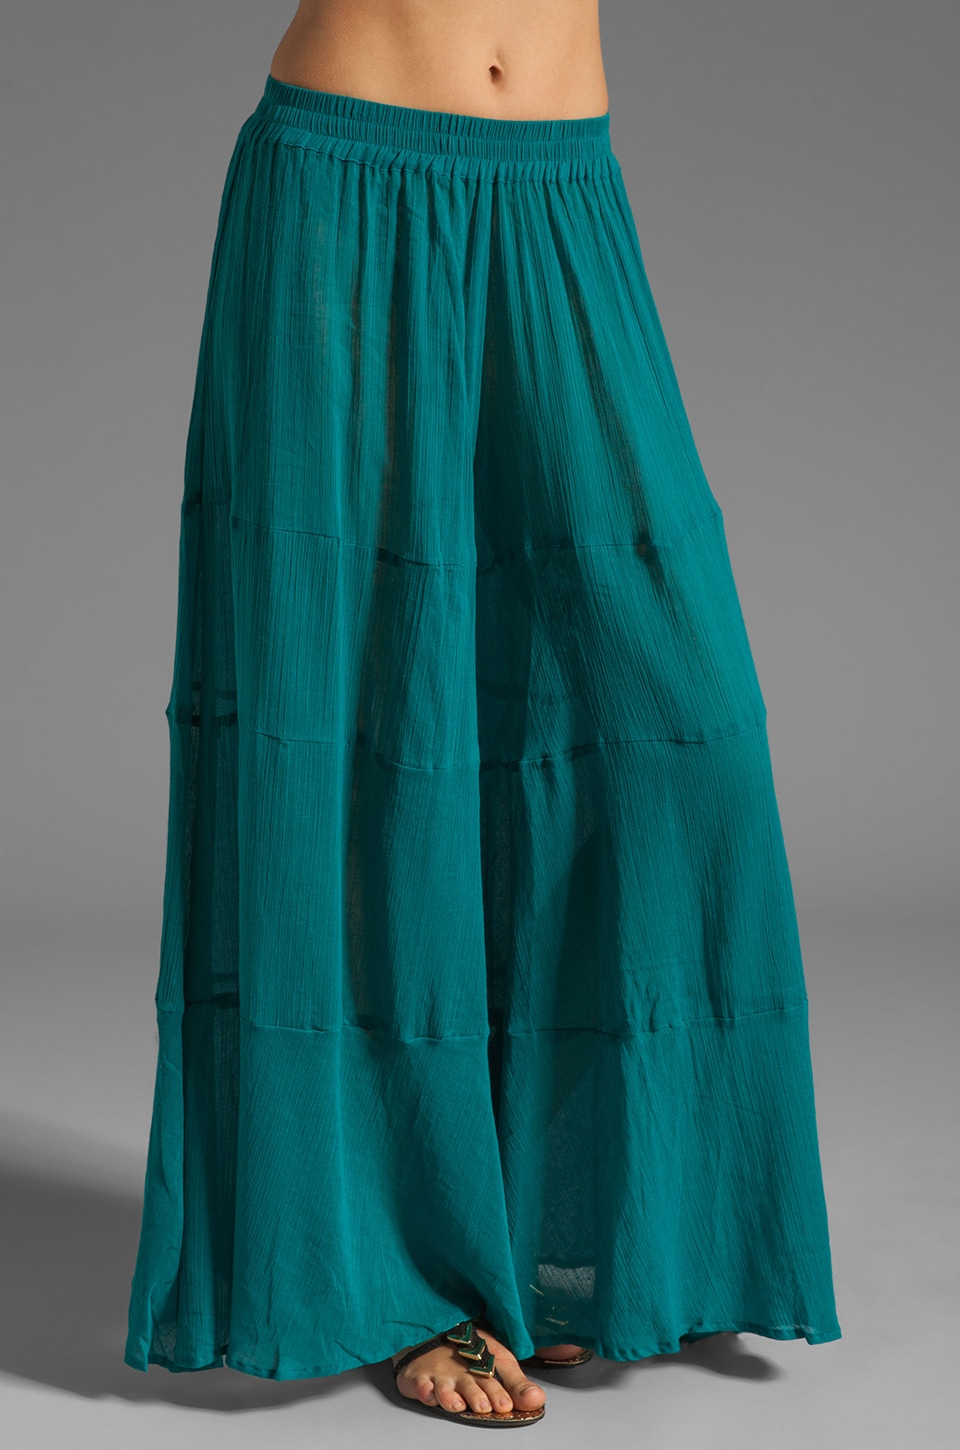 Gypsy Junkies Lola Wide Leg Linen Pant in Turquoise